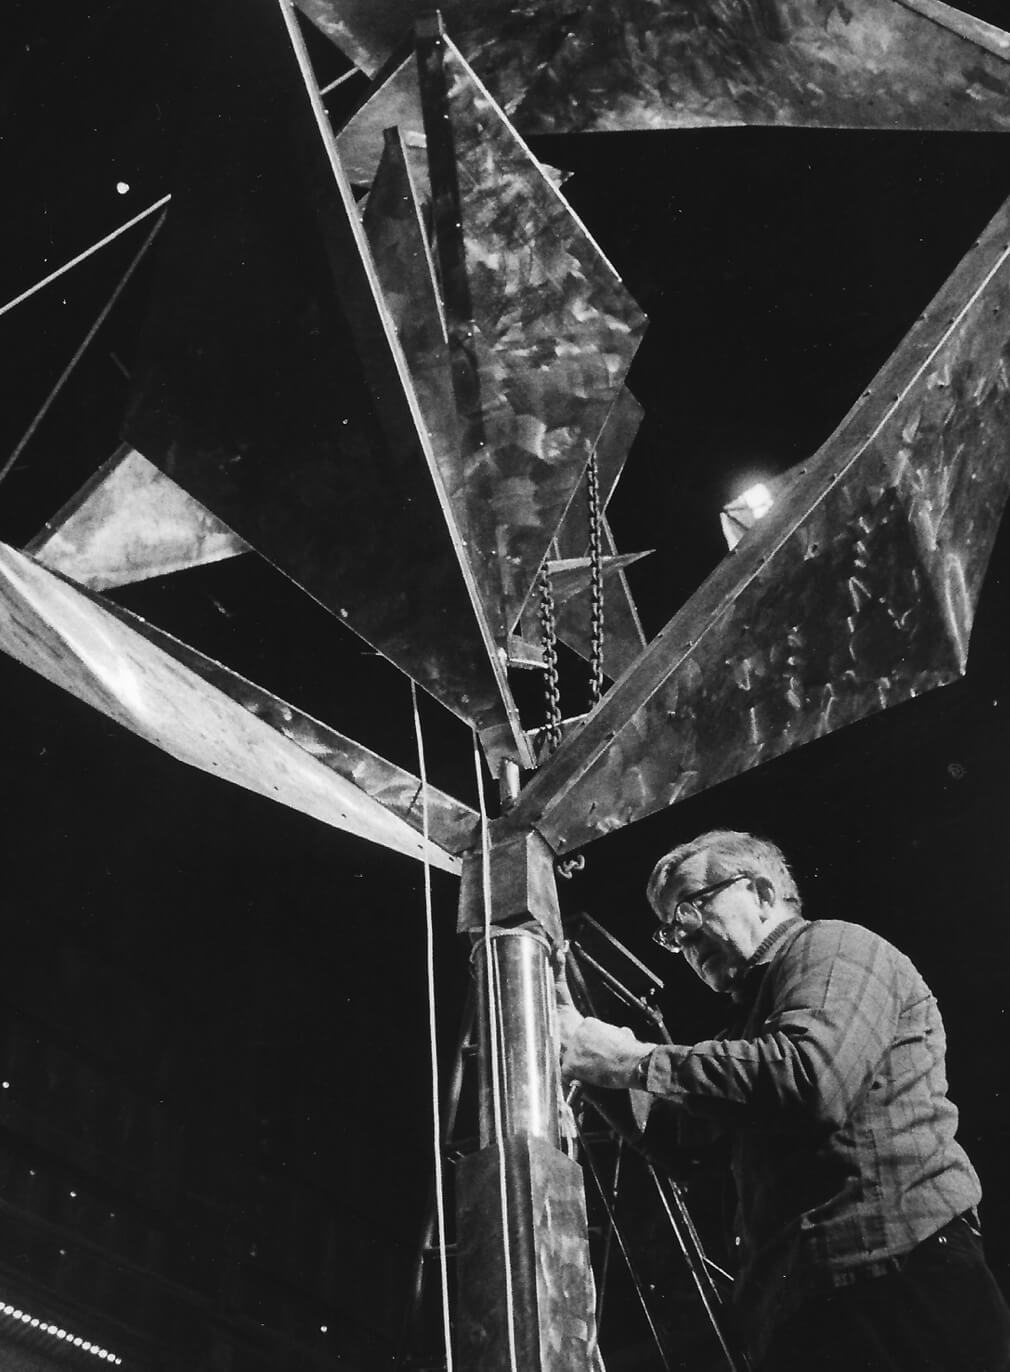 George Rickey installs Space Churn with Squares (1969) for Expo 70, Osaka, Japan, 1969